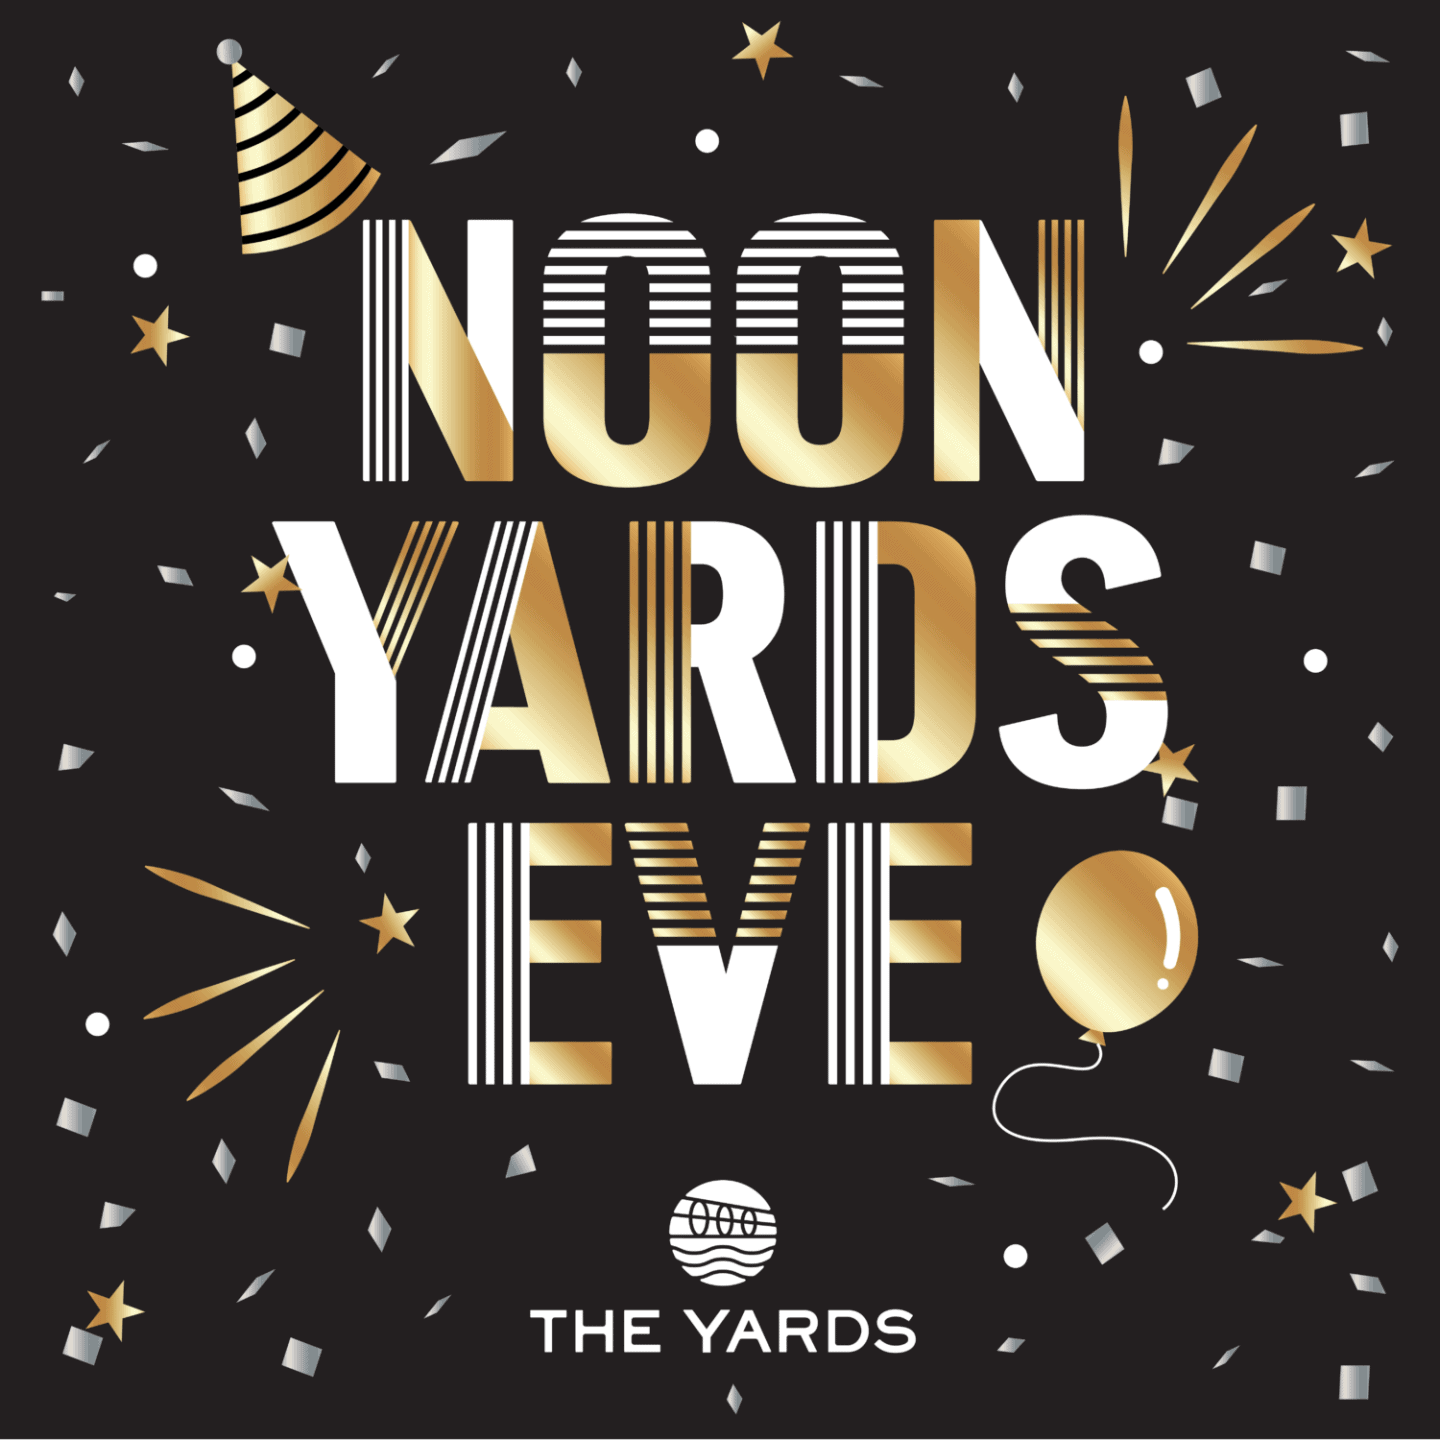 Things to Do with Kids on new years day Noon Yards Eve